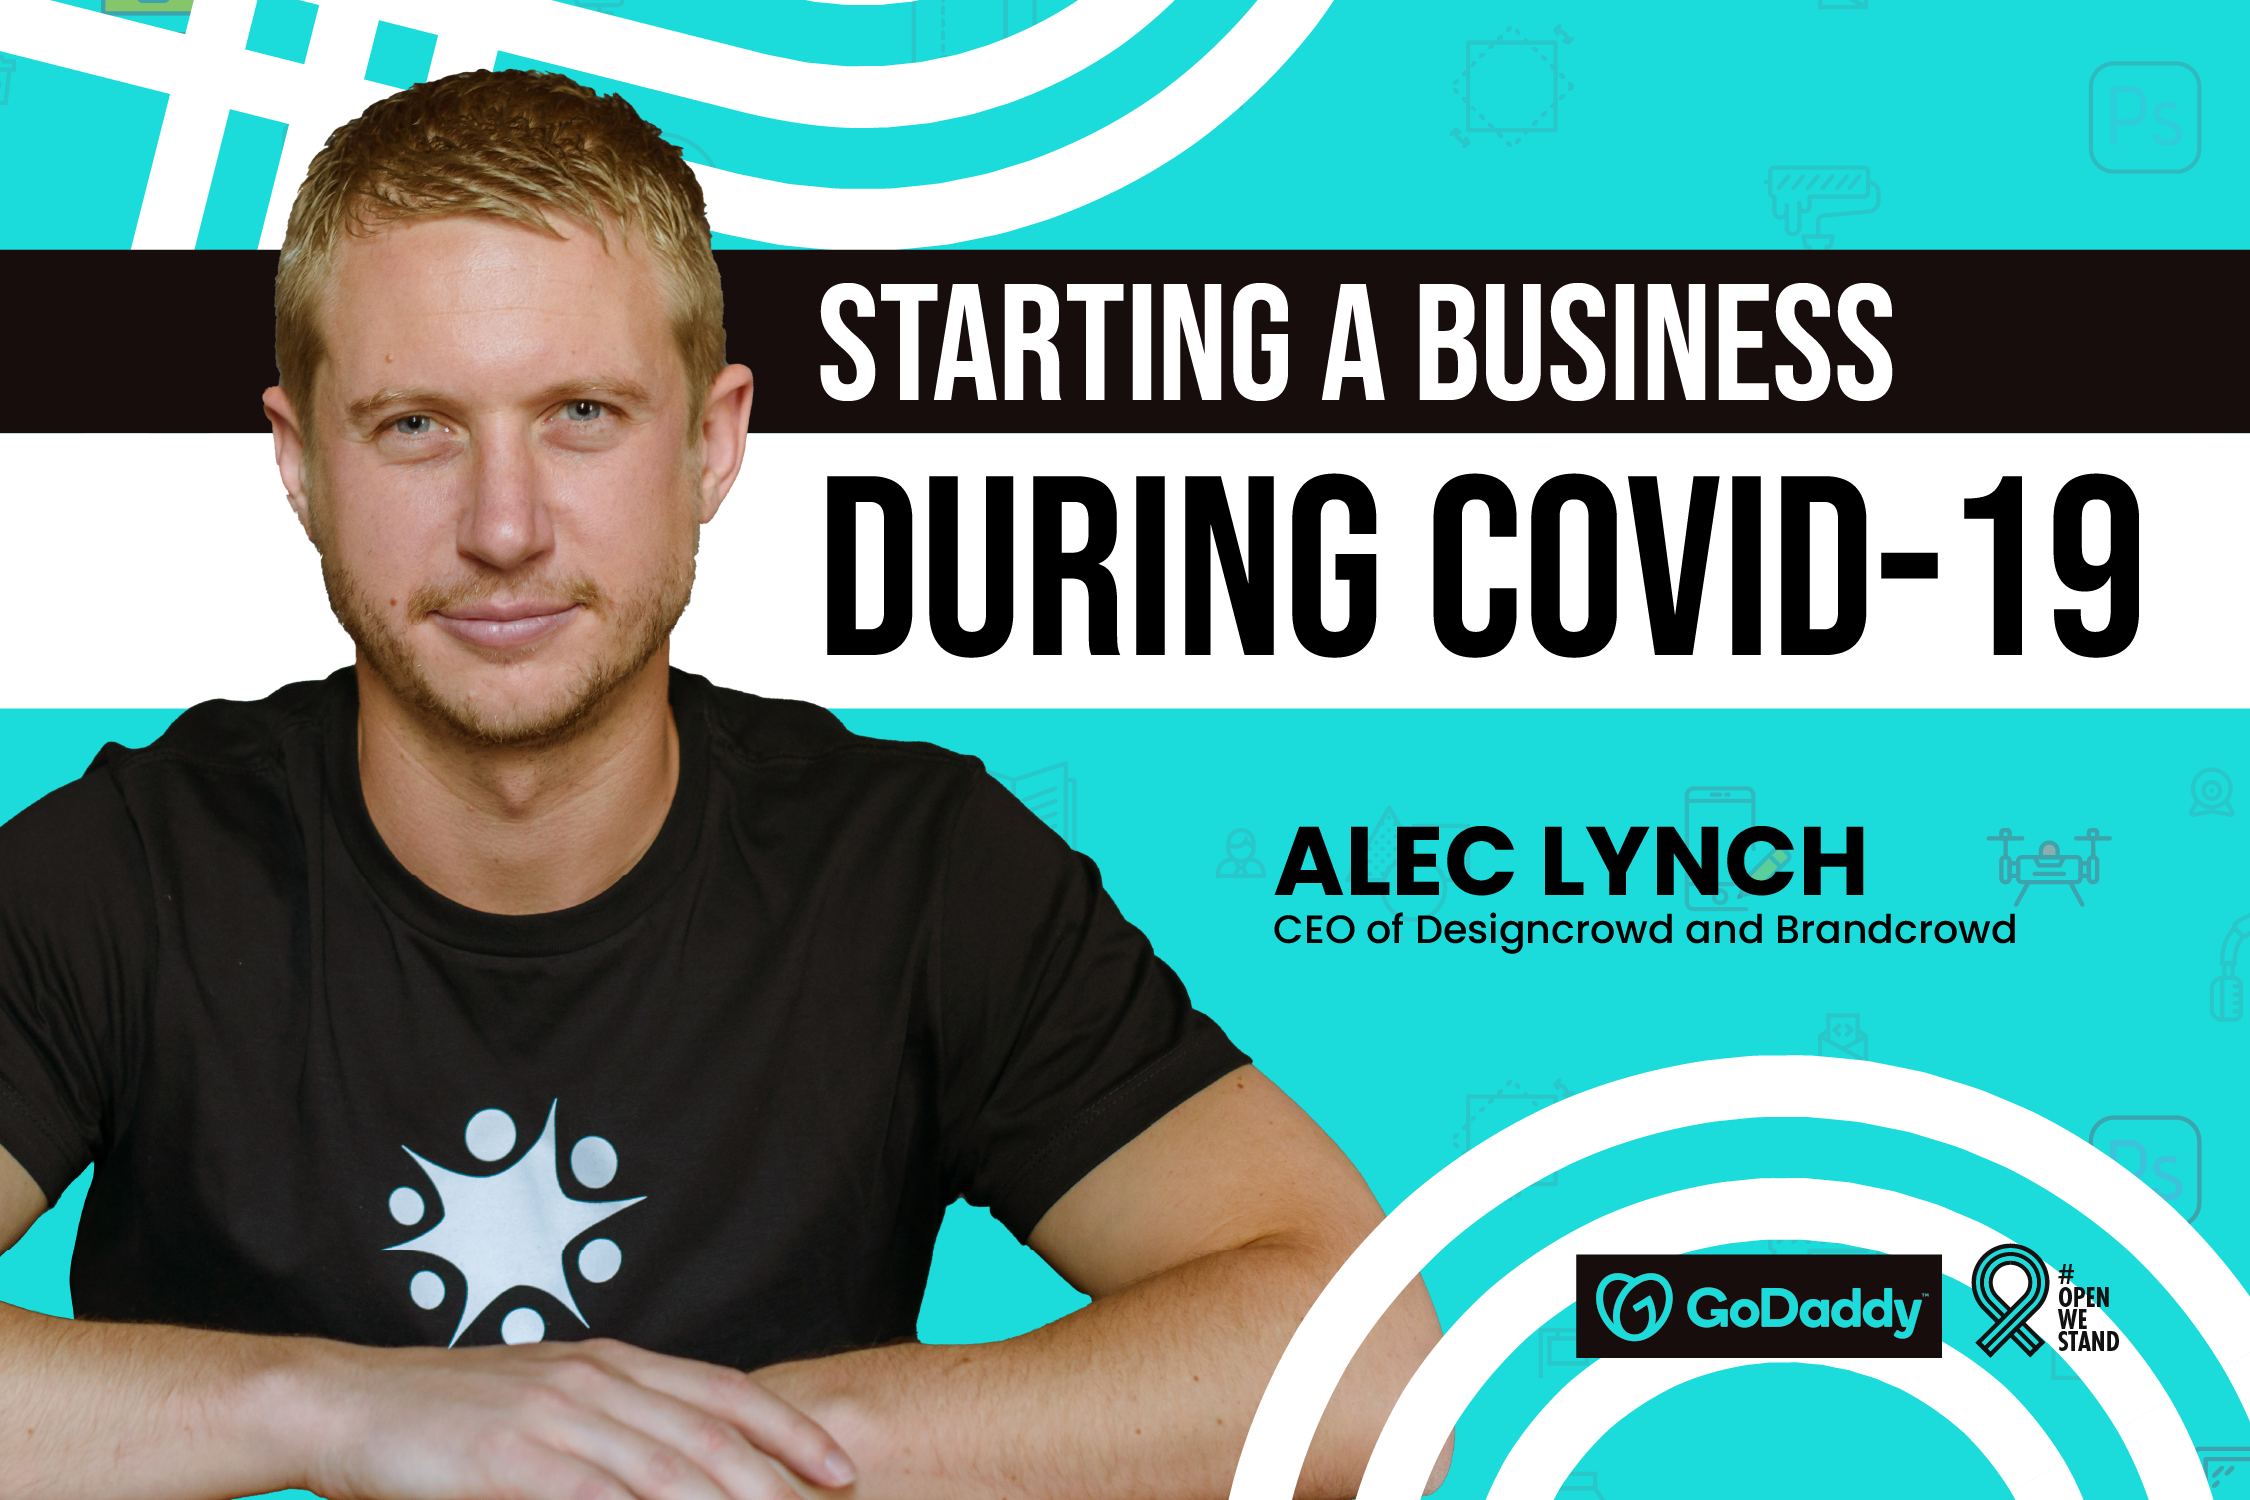 the-header-features-brandcrowd-and-designcrowd-ceo-alec-lynch-with-a-clean-sans-serif-typography-of-the-blog-title